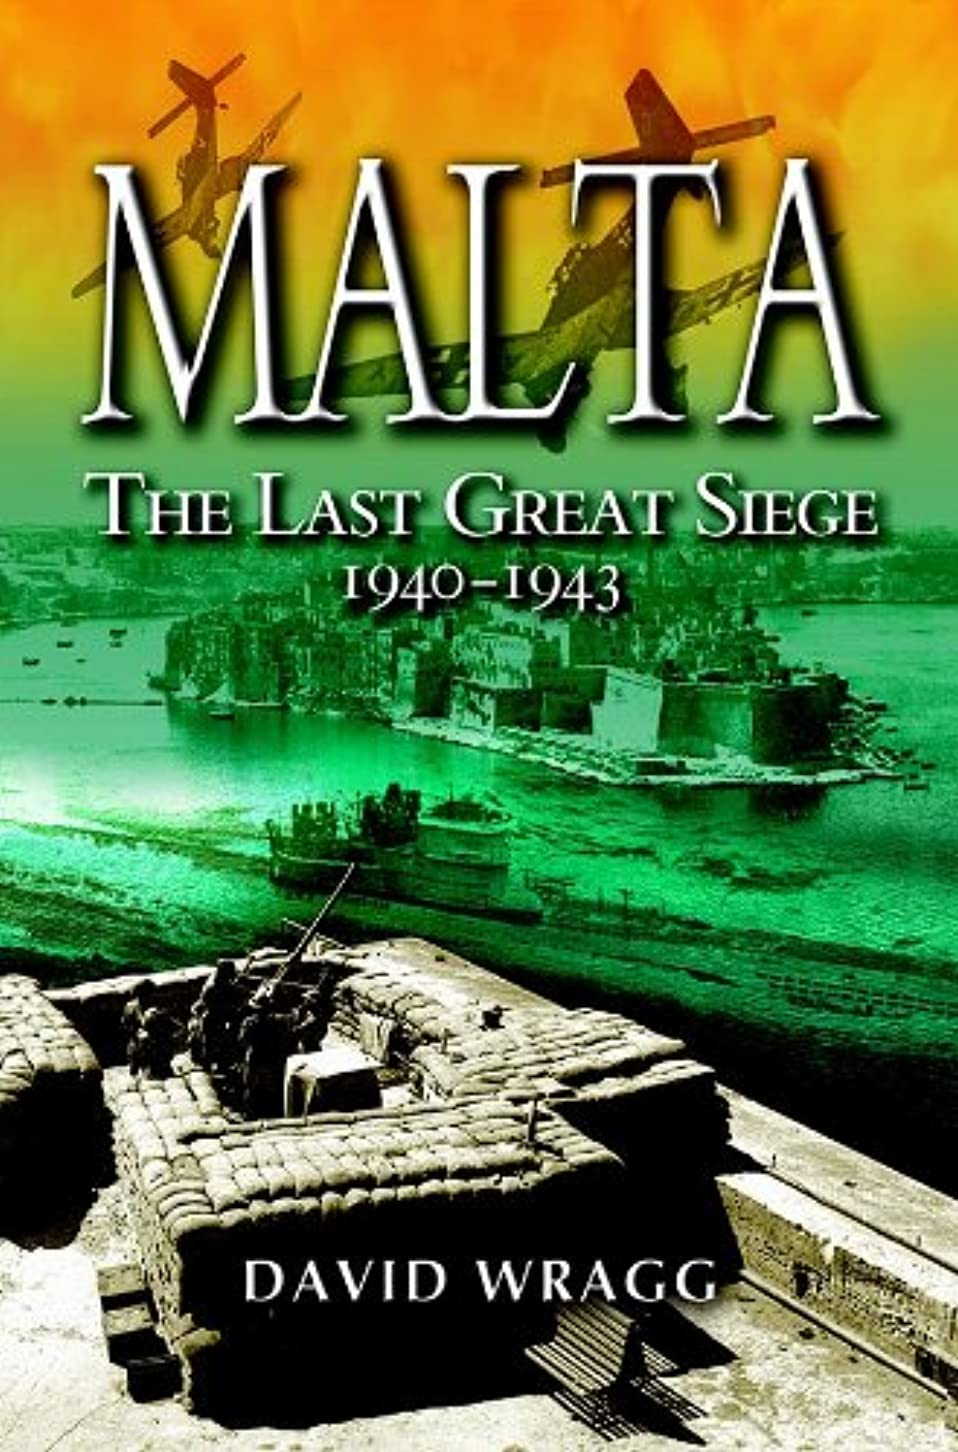 エキサイティング鼻スチュワーデスMalta: The Last Great Siege 1940 - 1943: The Last Great Siege 1940-1943 (English Edition)